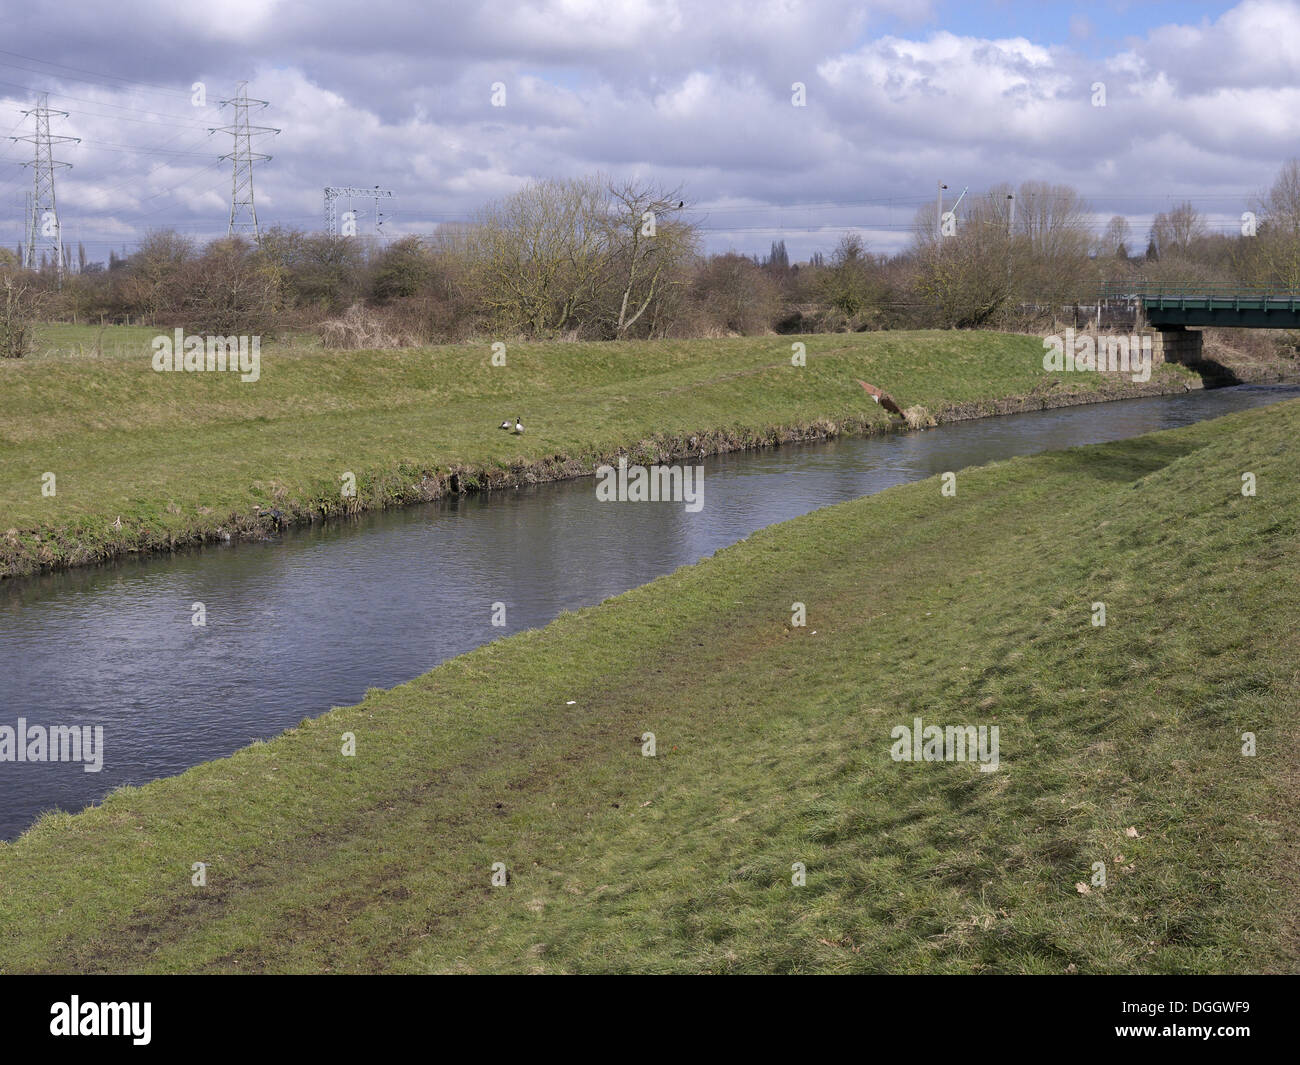 View of river and riverbanks, River Tame, Sandwell Valley RSPB Reserve, West Midlands, England, April - Stock Image